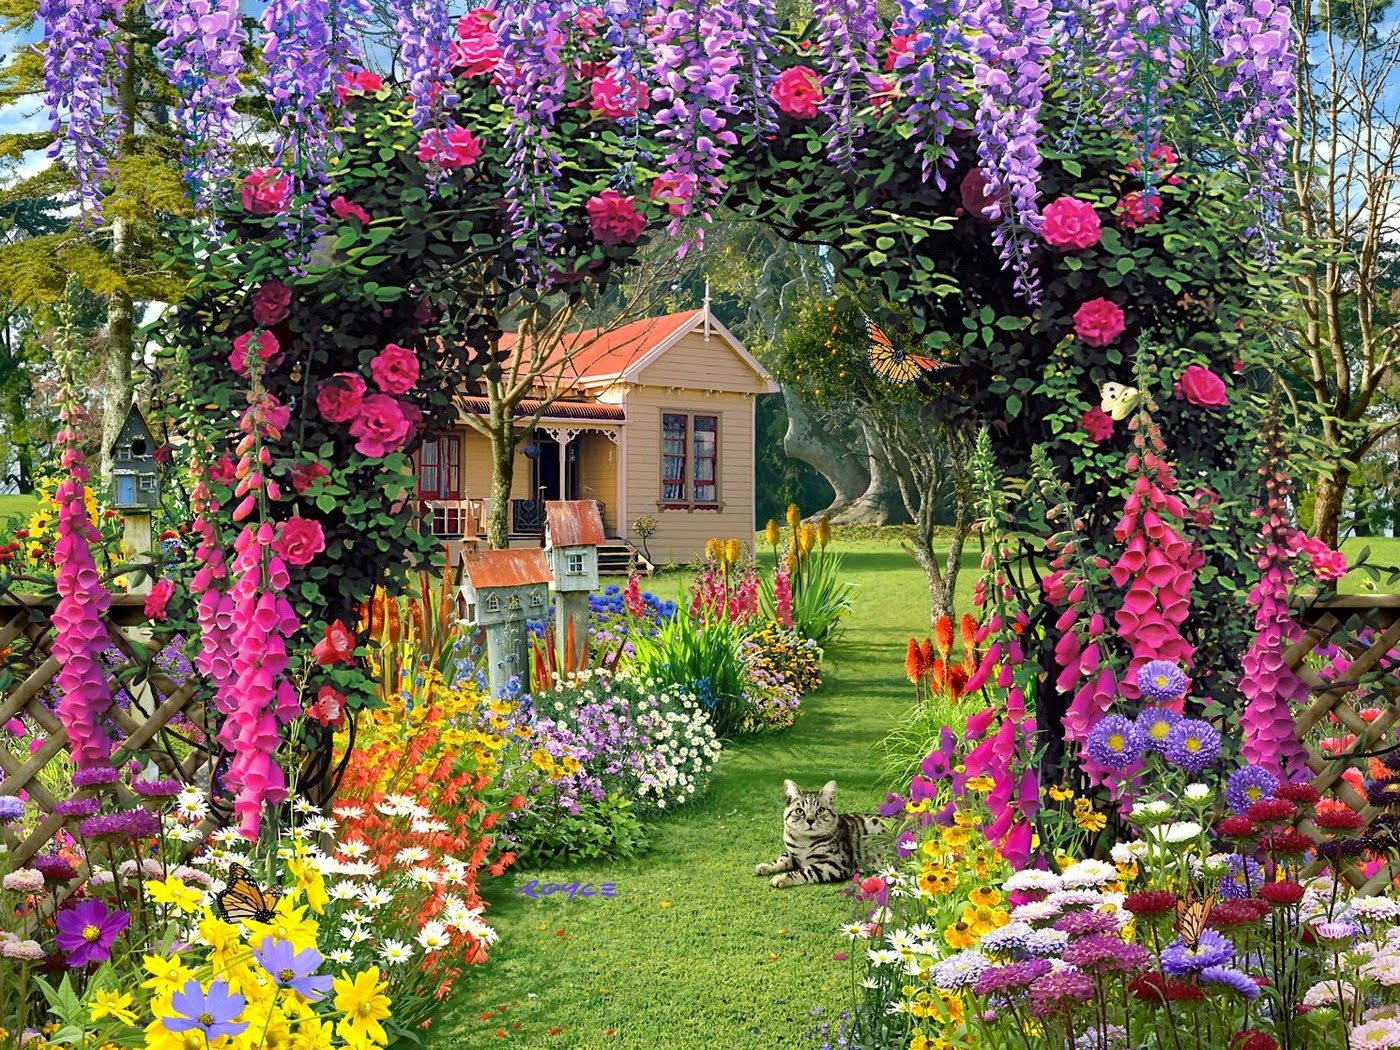 Amazing garden flowers wallpapers beautiful flowers for Amazing flower gardens